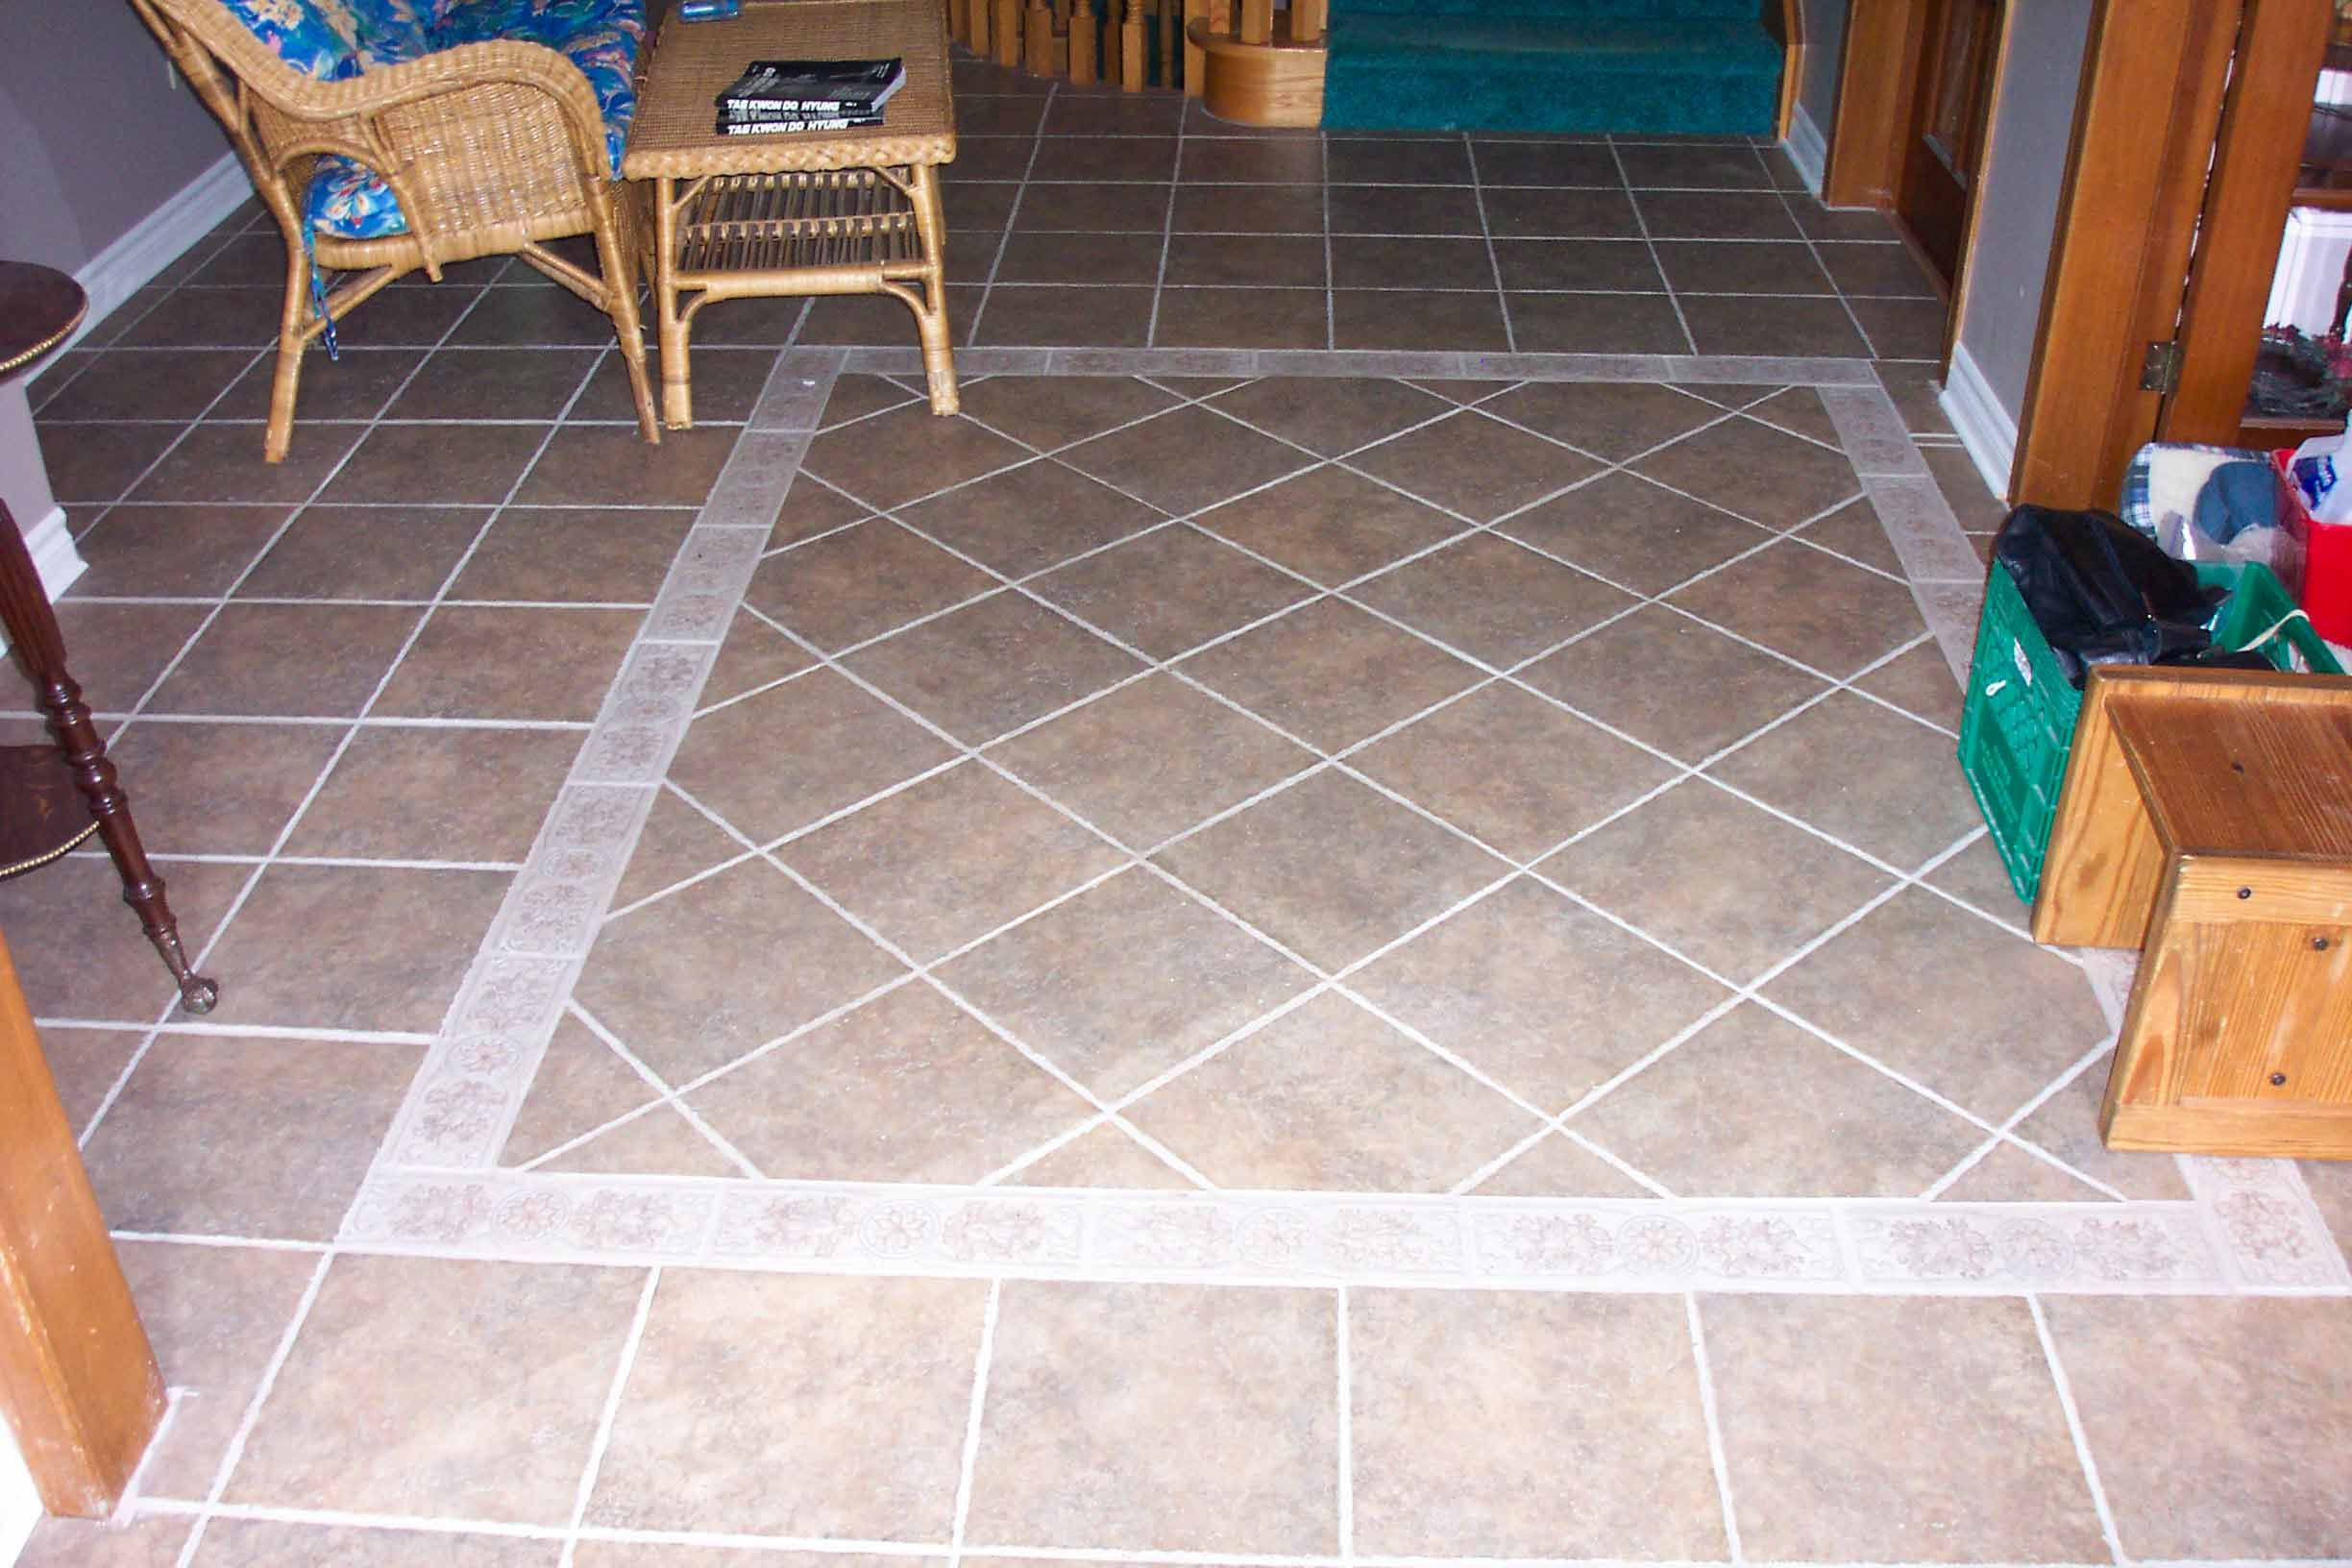 17 Best images about trying to find gray tile u0026 pattern: kitchen floor on  Pinterest | The floor, Falls